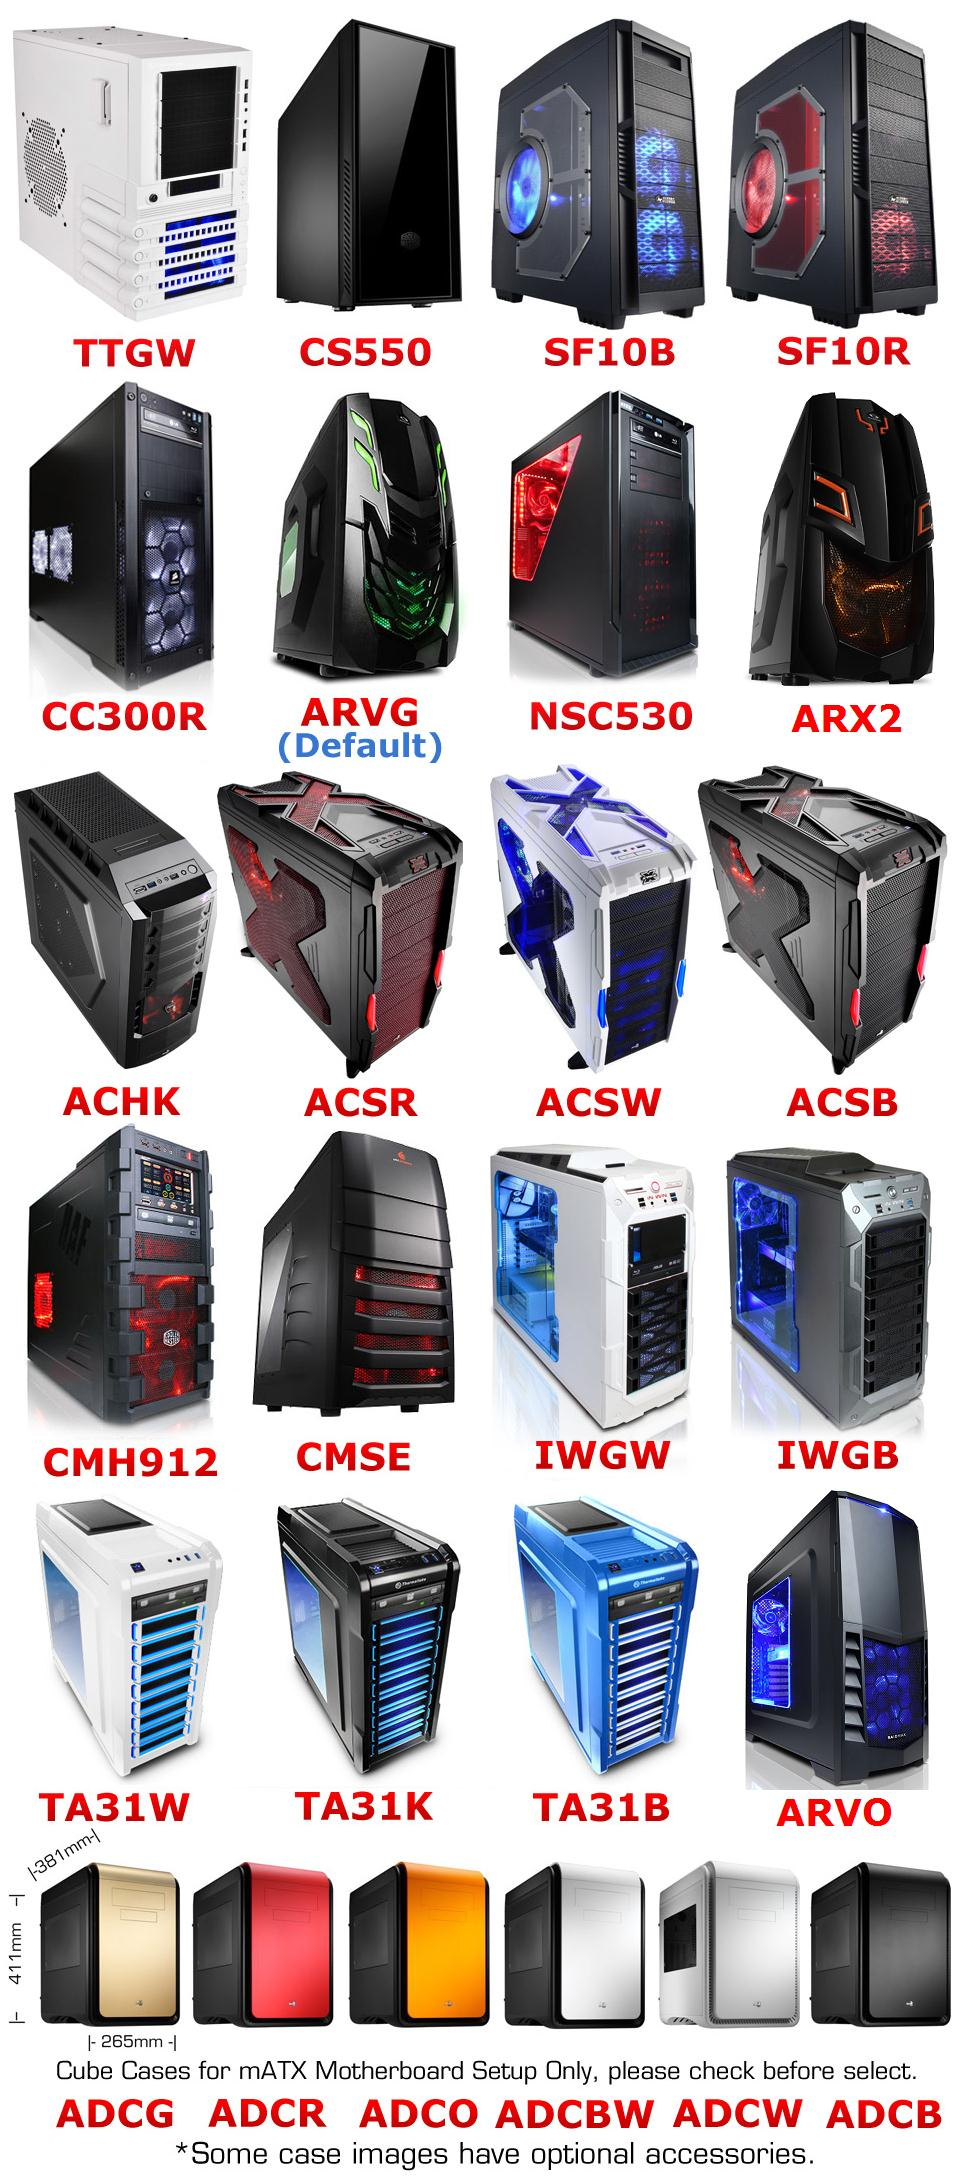 http://www.pcmeal.com/ebay/ComputerSystem/NZXT/ceWfJIn3O74HE03_8.jpg